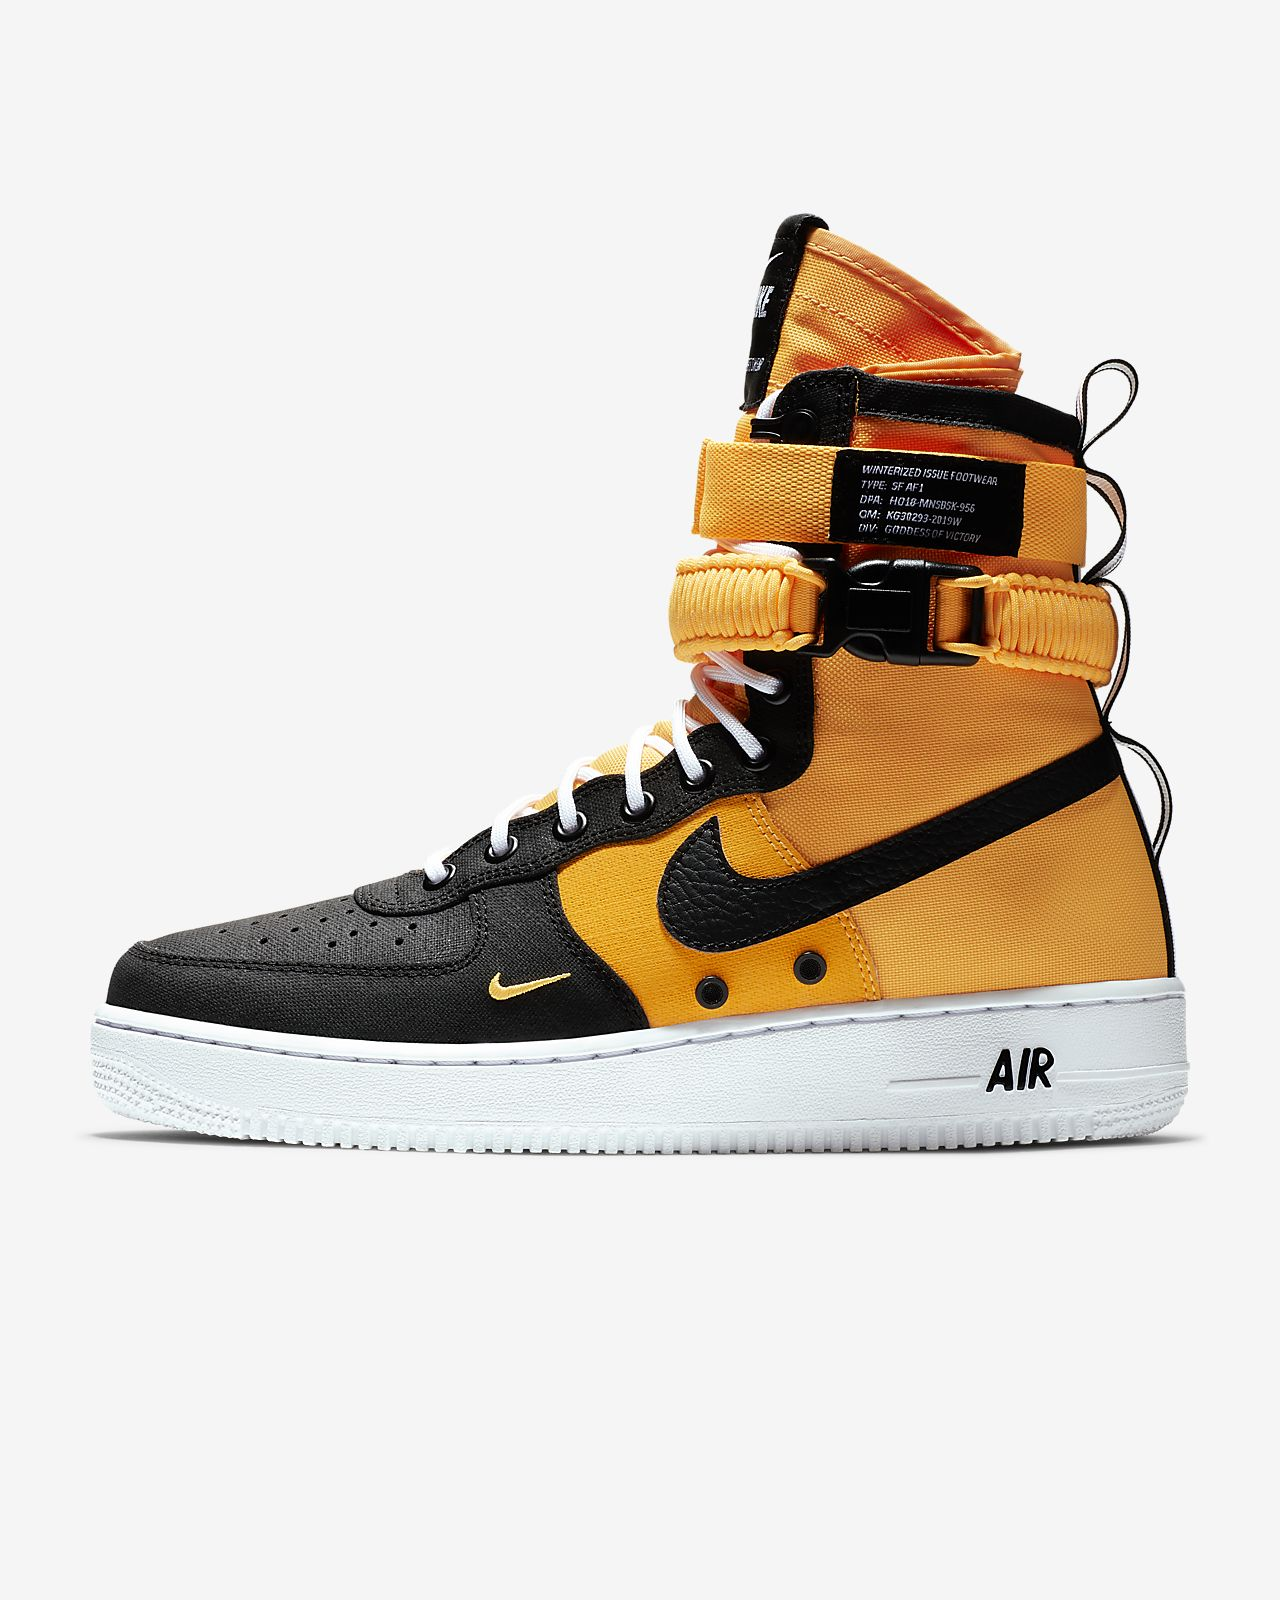 san francisco 0eec6 55e5b Nike SF Air Force 1.  115.97.  180. Low ...